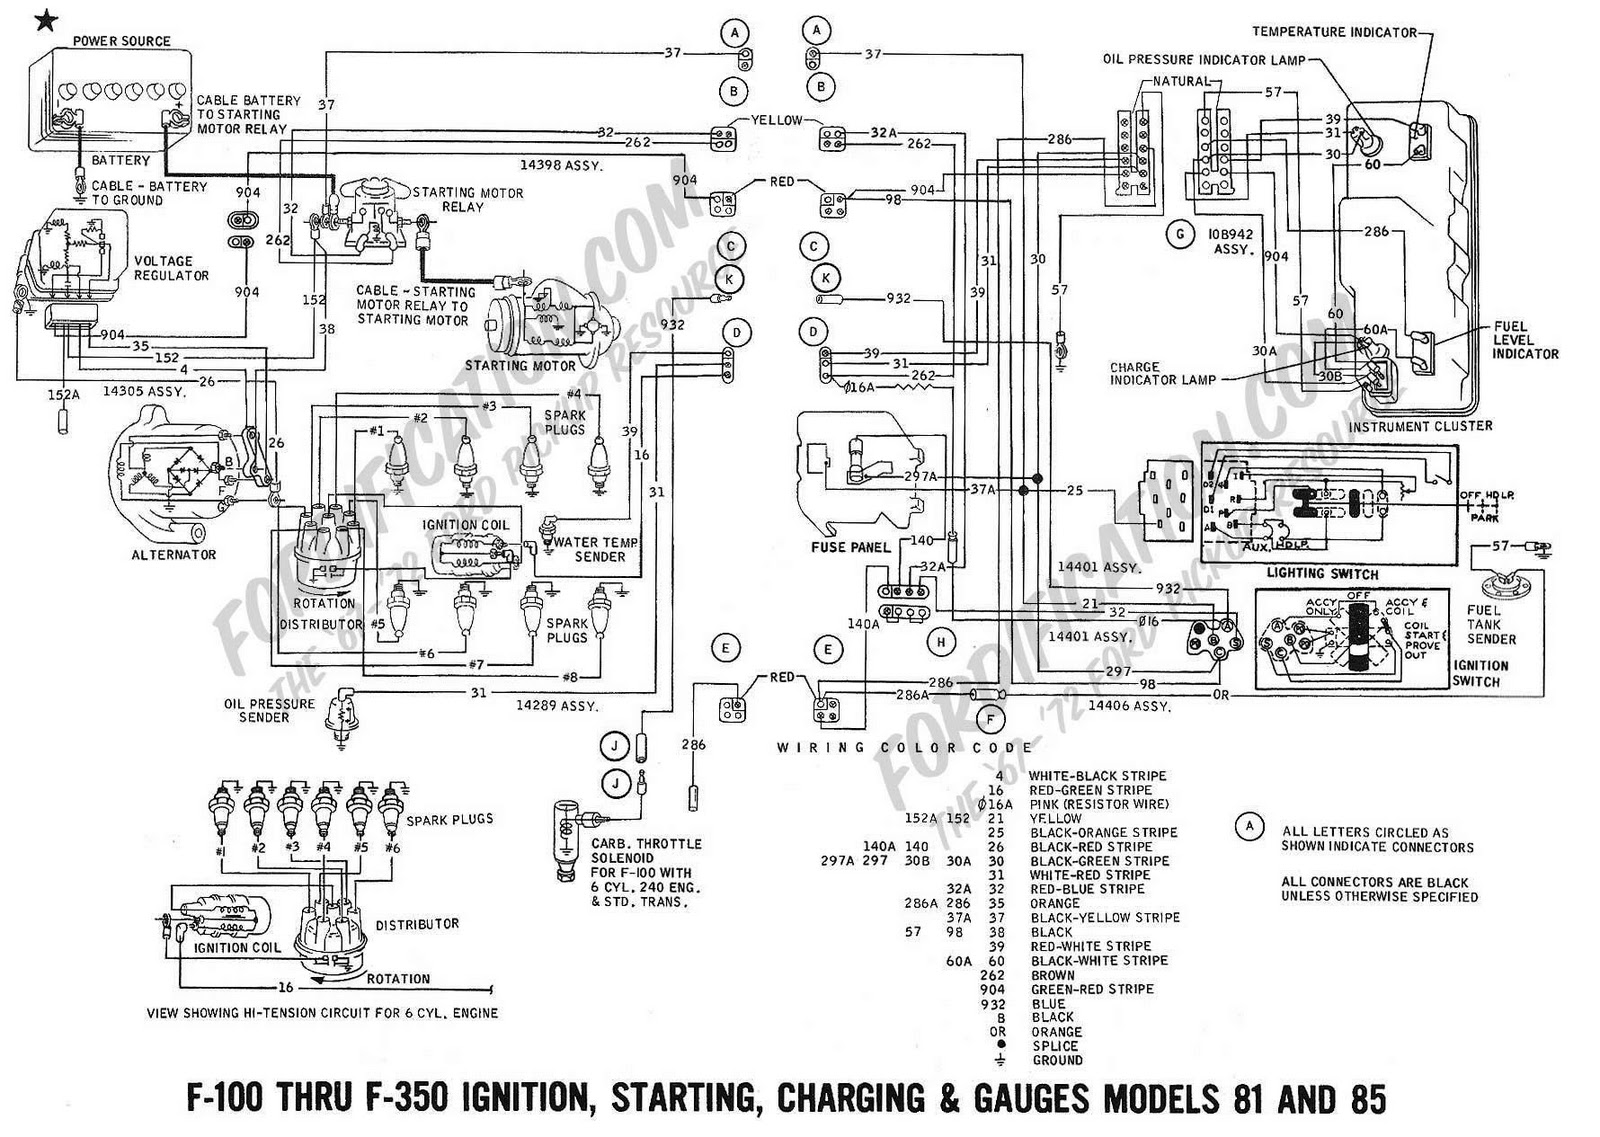 1969+Ford+F100 F350+Ignition%252C+Starting%252C+Charging%252C+And+Gauges+Wiring+Diagram mustang faq wiring & engine info readingrat net Chevy Ignition Wiring Diagram at crackthecode.co